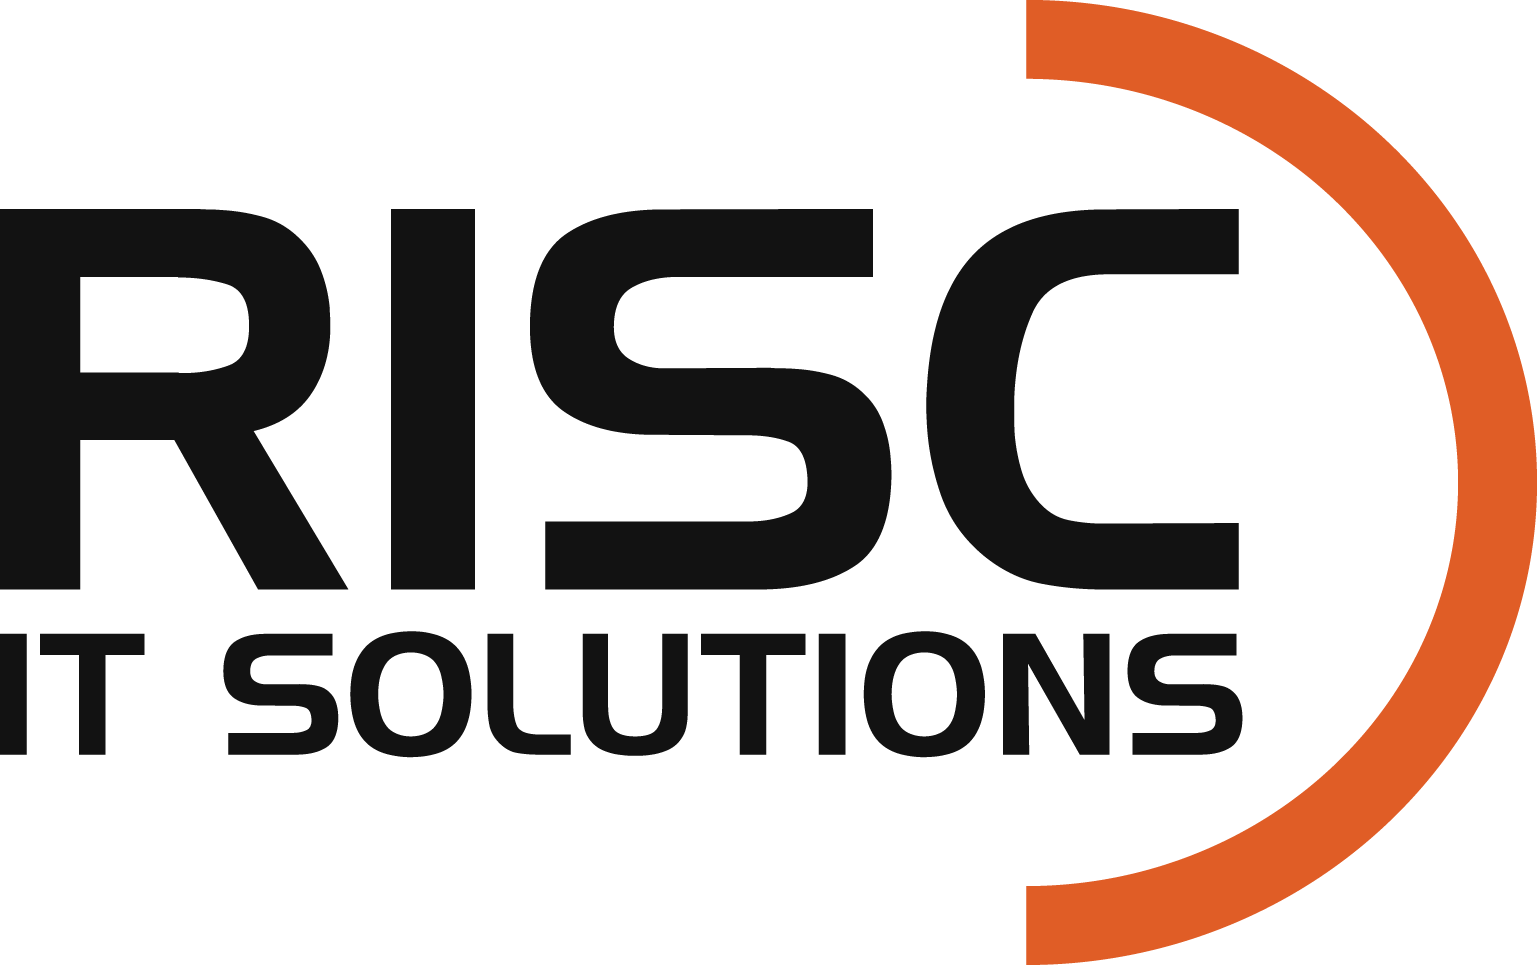 Risc IT Solutions